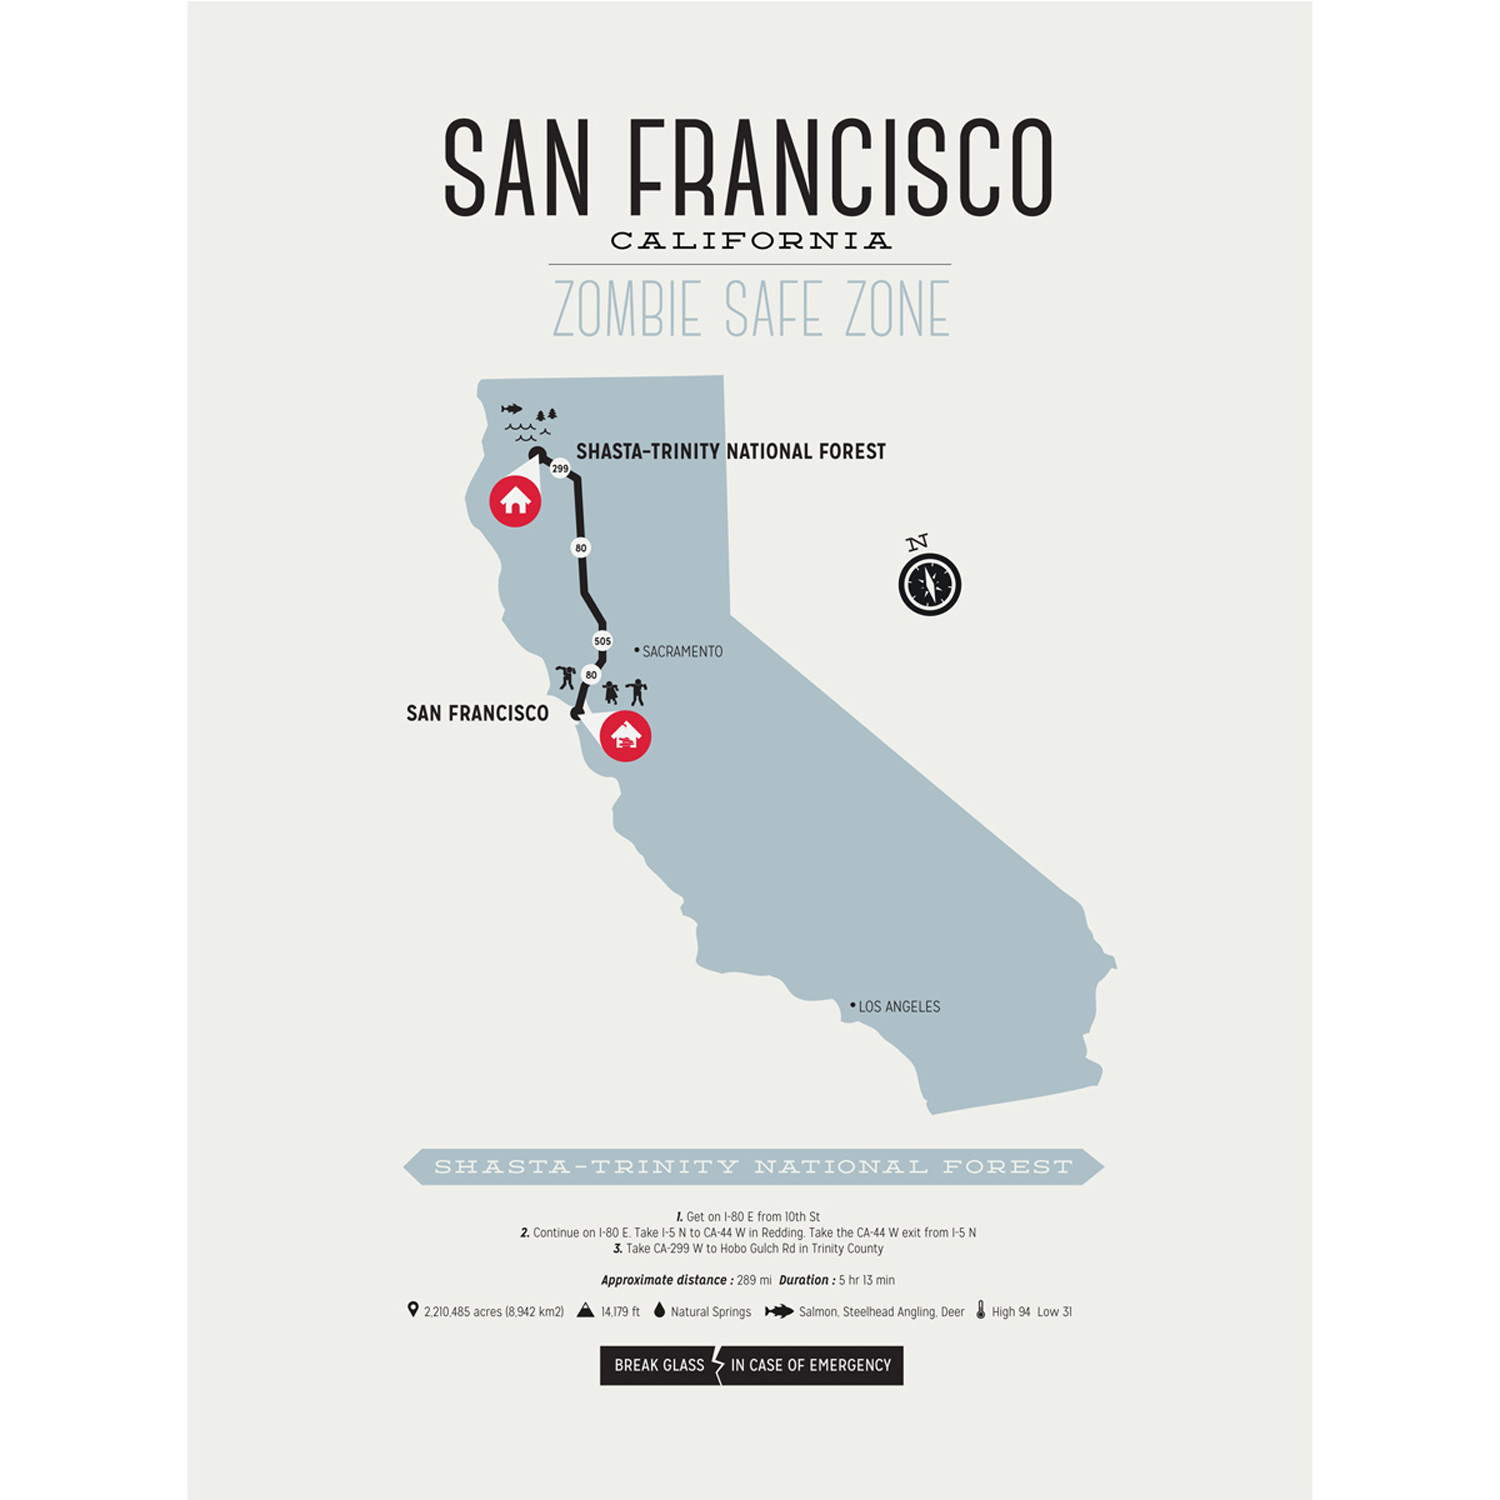 Zombie Safe Zone Map // San Francisco (Steel Blue) - Design ... on zone map of corpus christi, information of san francisco, flowers of san francisco, resources of san francisco, zone map of paris, zone map of hong kong, trees of san francisco, zone map washington, zone map of united states, zone map of rio de janeiro, secrets of san francisco, zone map of tulsa, zone map of wisconsin,